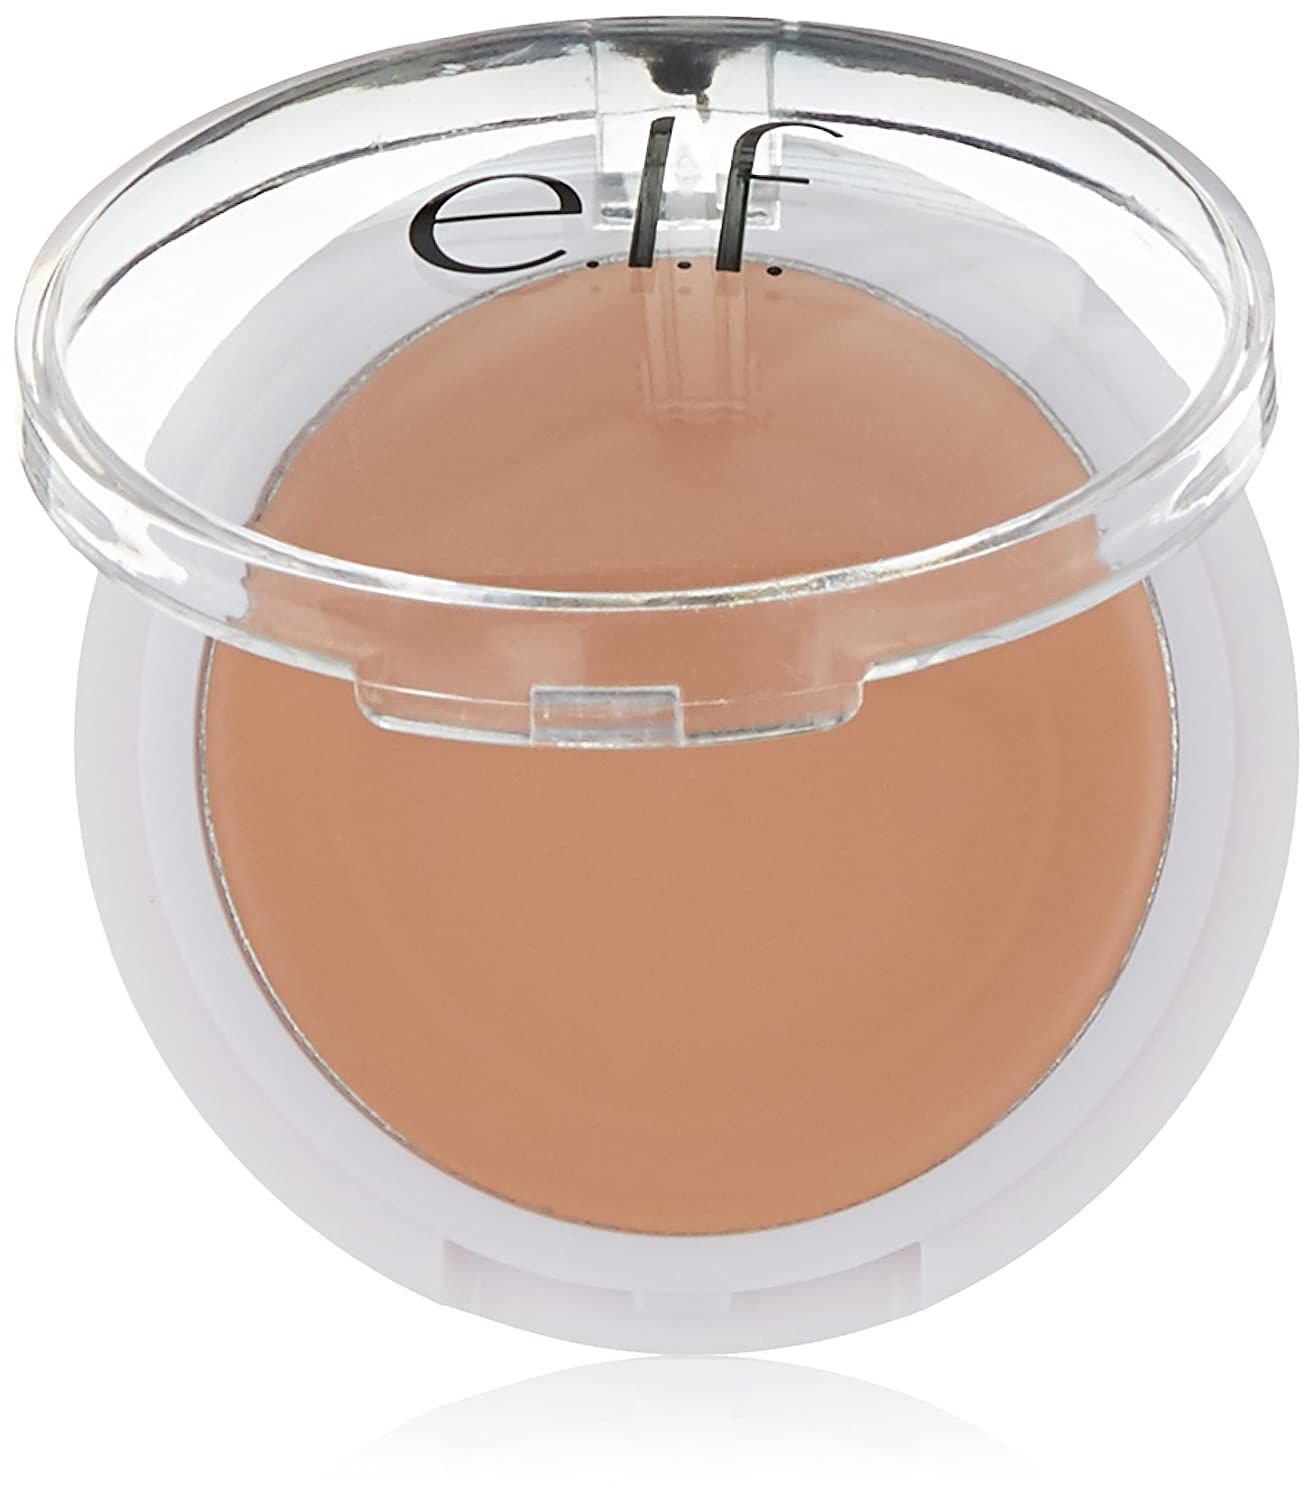 e.l.f. Cover Everything Concealer, Light, 0.141 Ounce JA Cosmetics 23142